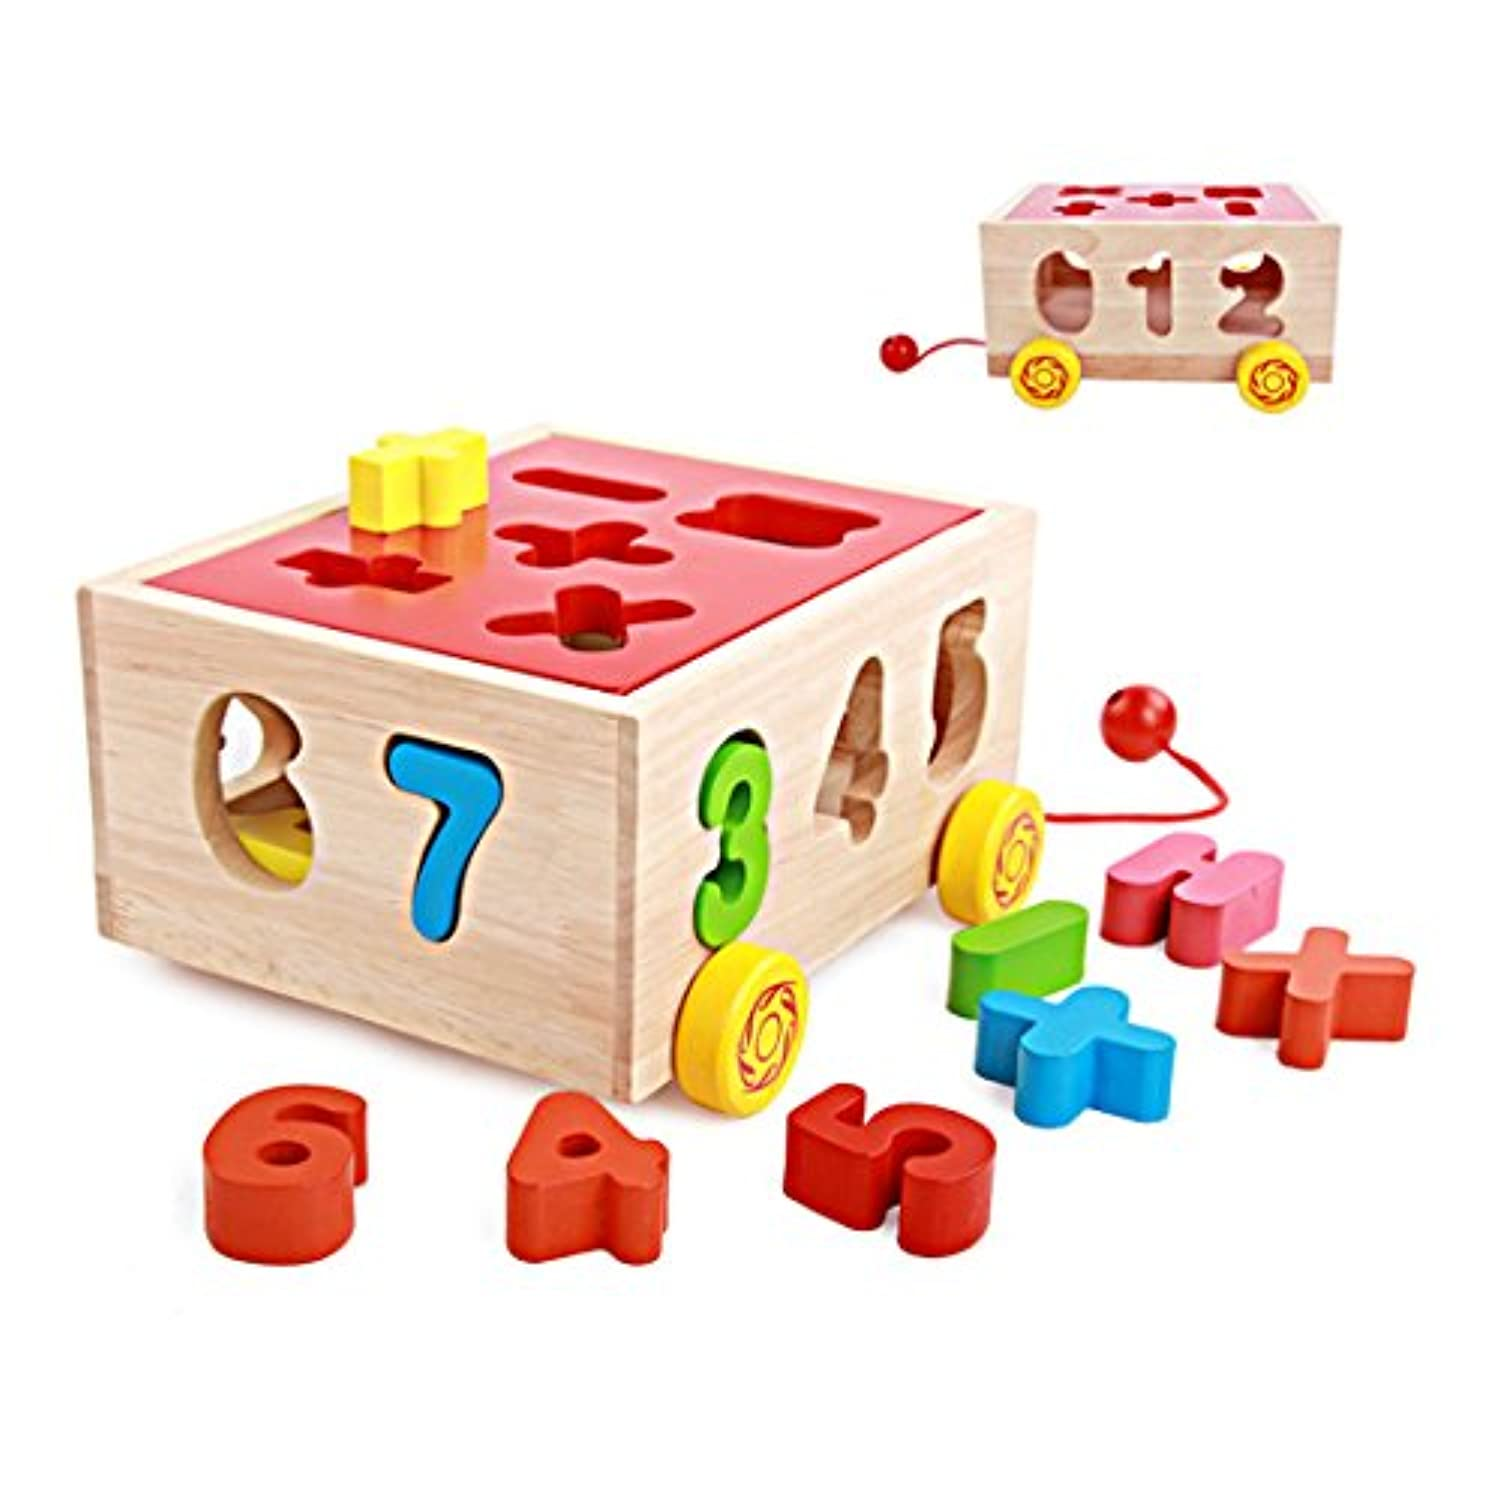 SMATTER Wooden Shape Sorting Box Cart, 14 Hole Cube For Shape Sorter Cognitive And Matching Wooden Toys